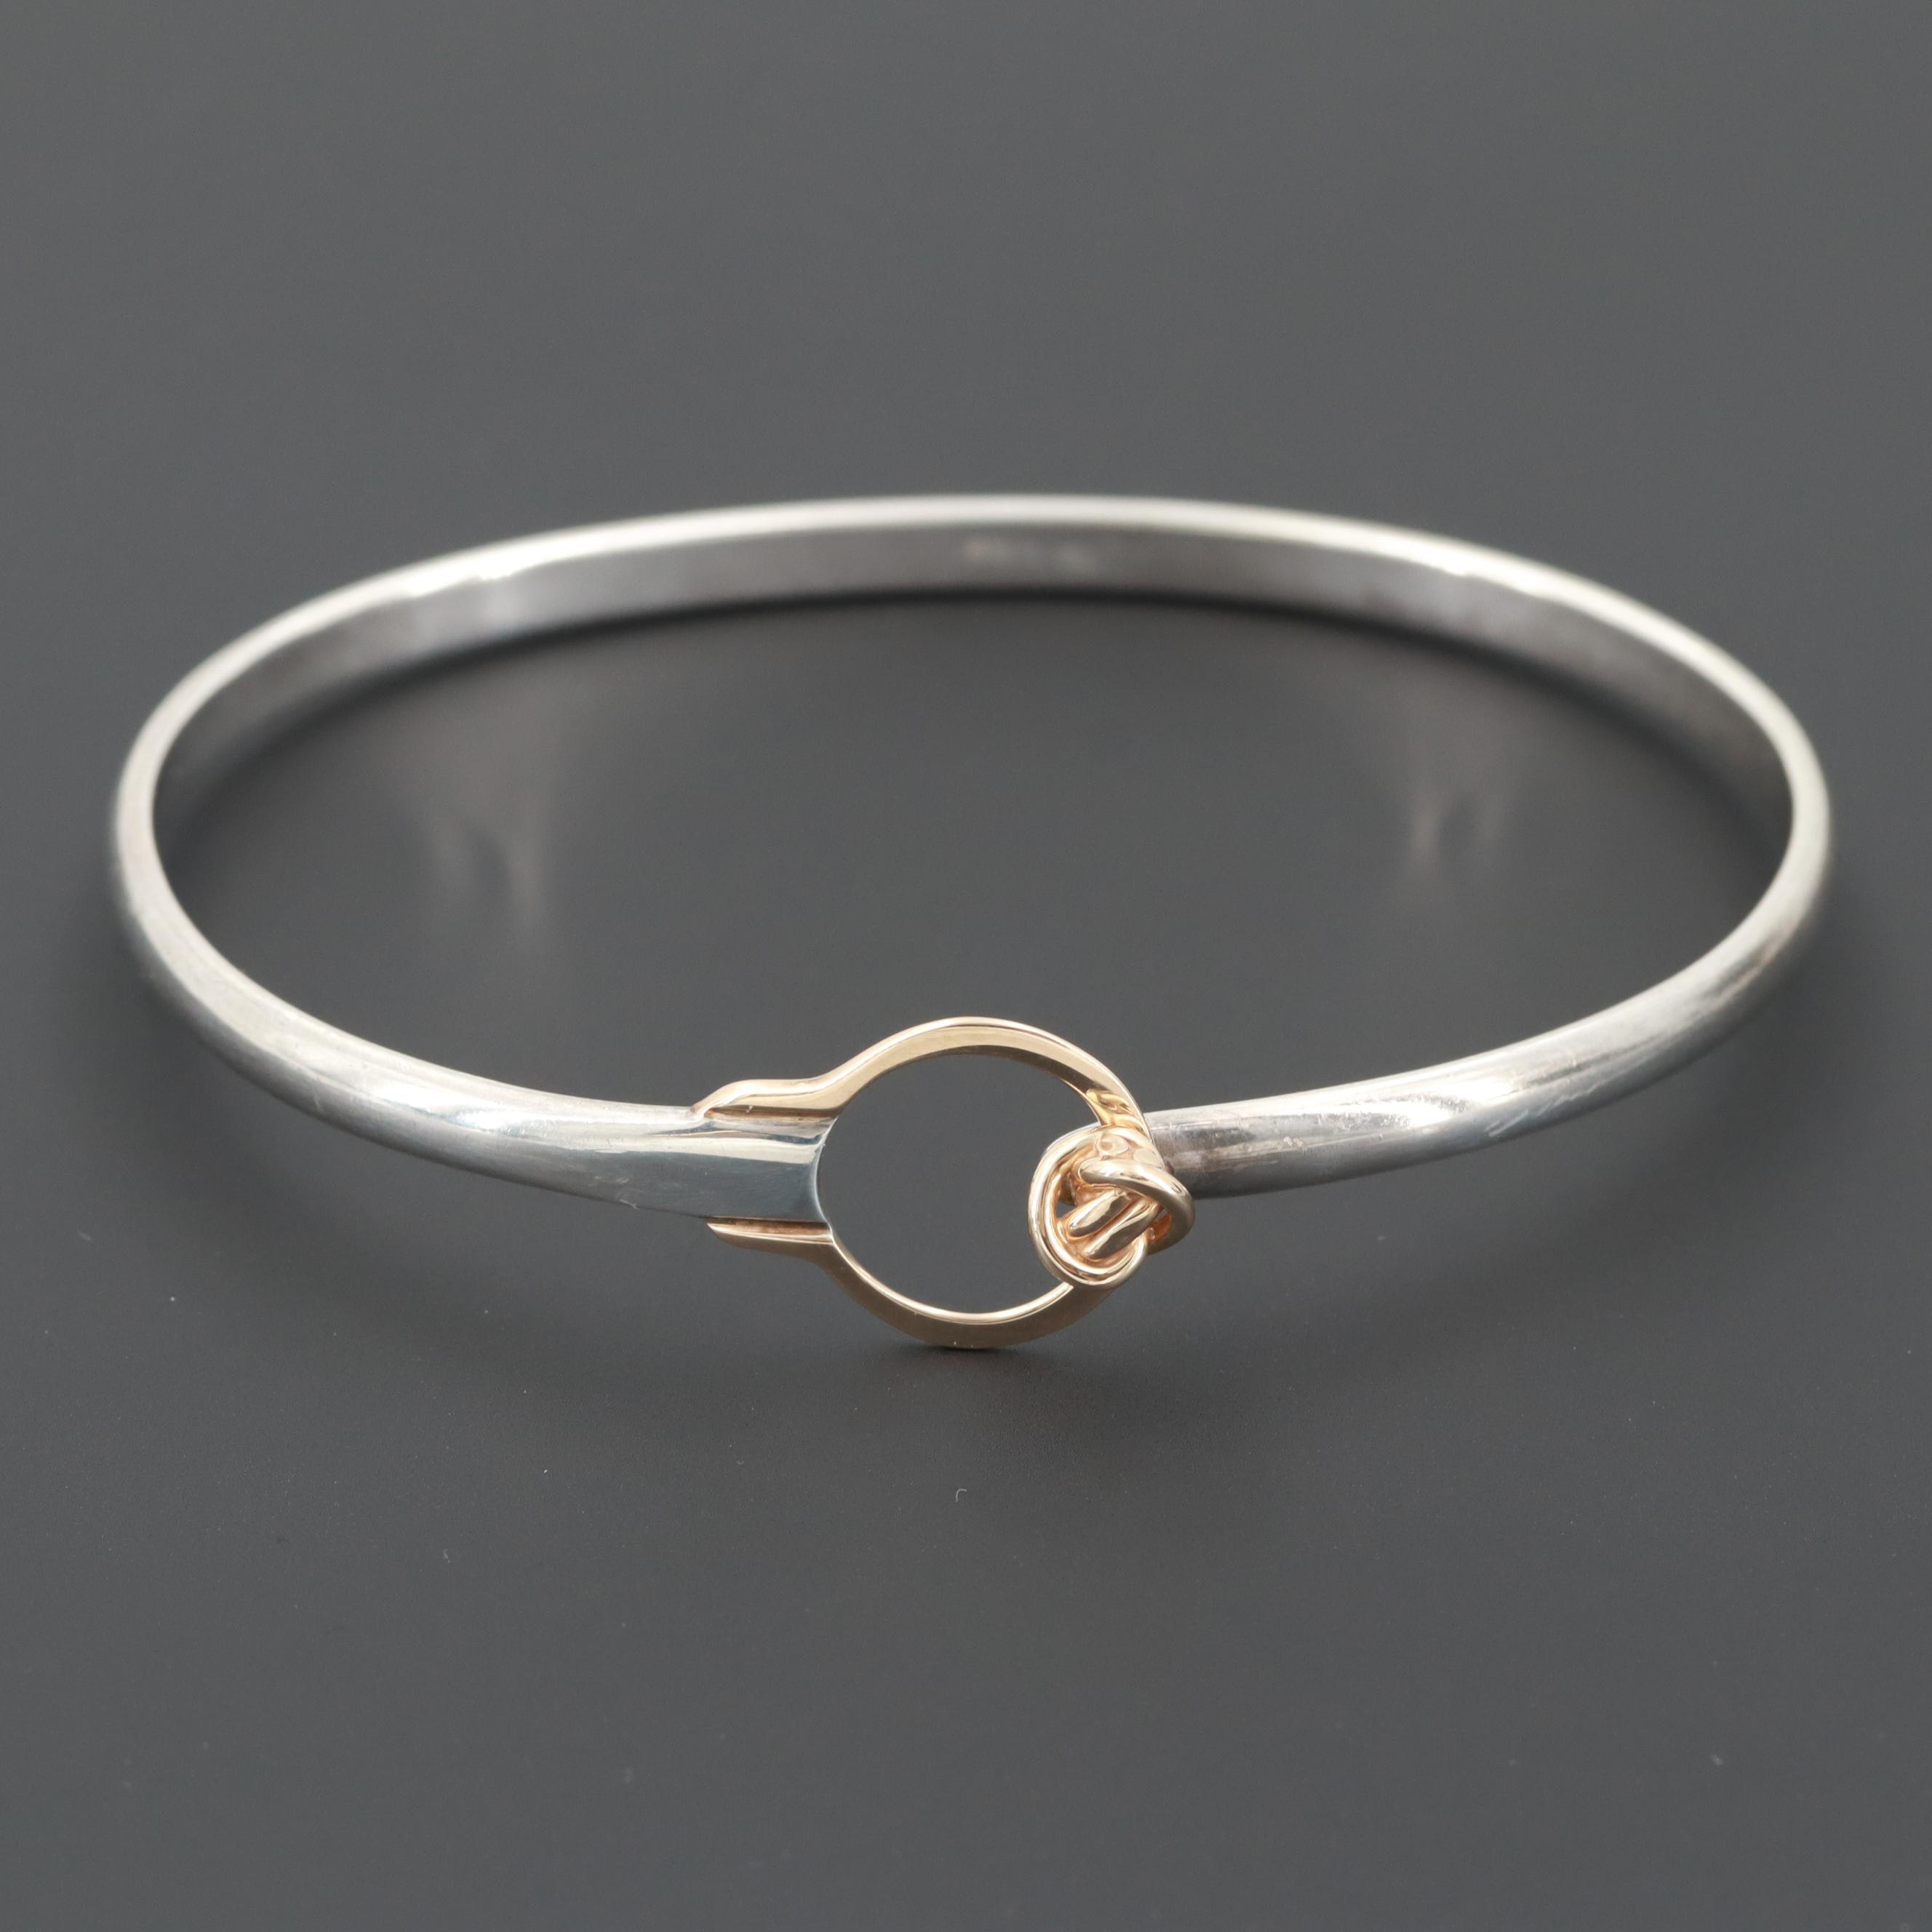 Sterling Silver Bracelet with 14K Yellow Gold Accent